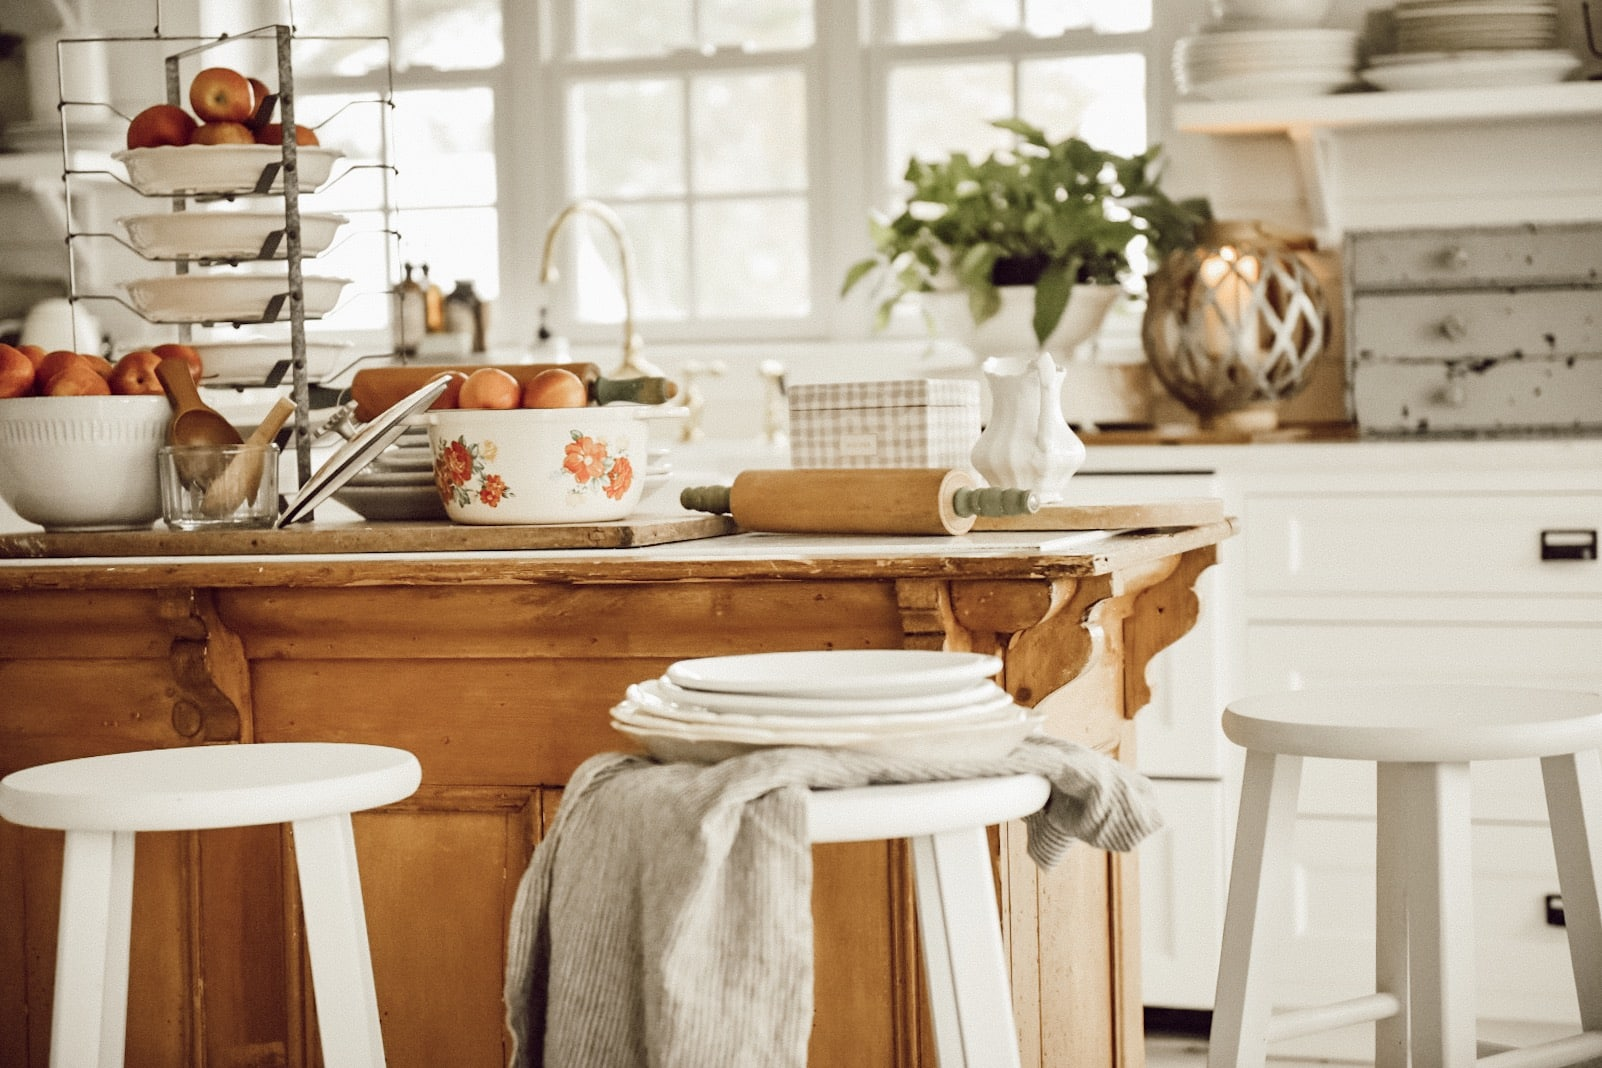 A Tip For Prepping Your Home For The Holidays